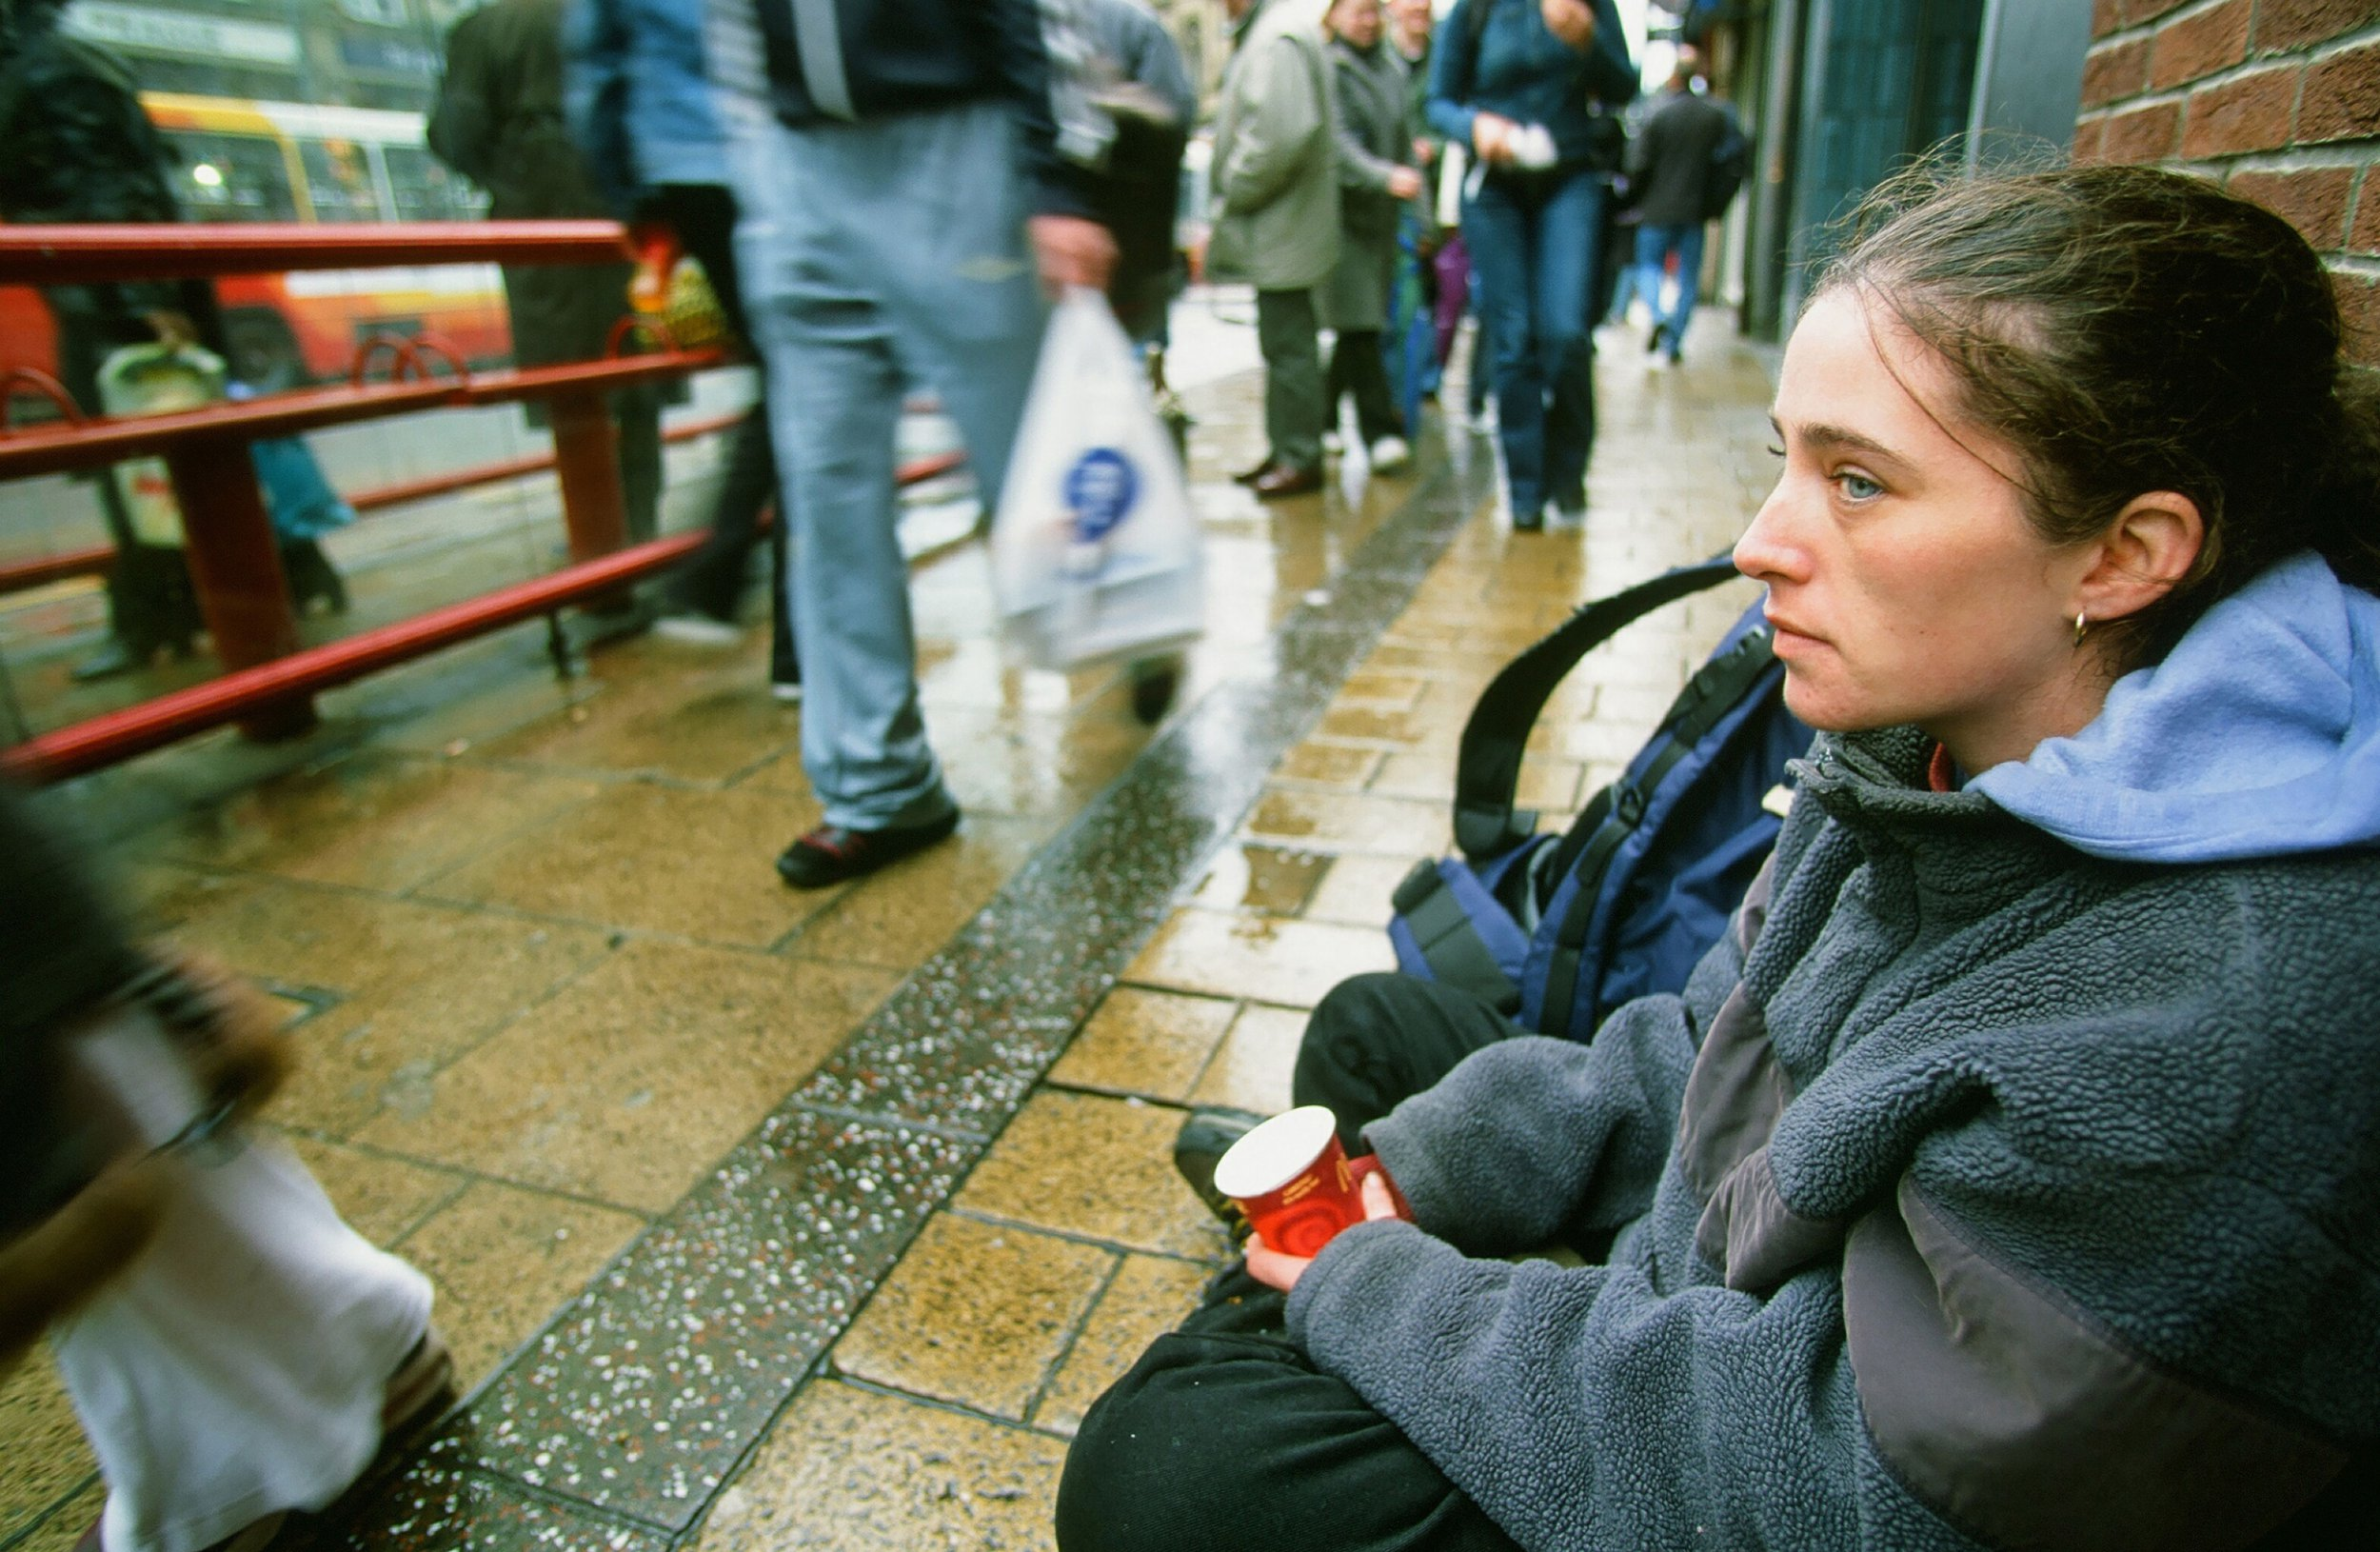 Women and families are hit hardest by austerity, says MSP ahead of 2017 Budget